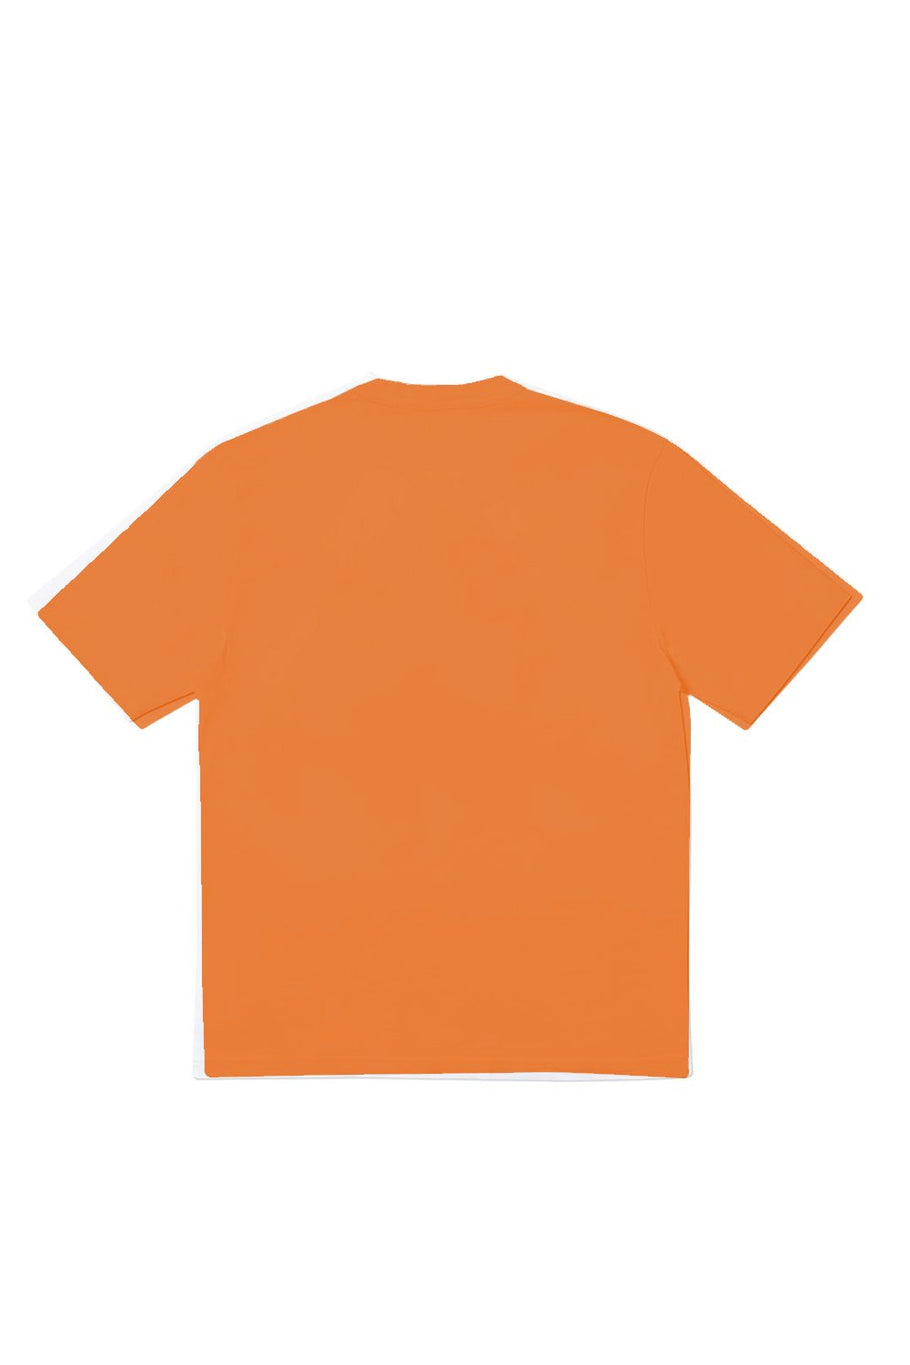 Camisetas Camiseta Orange Goosebumps